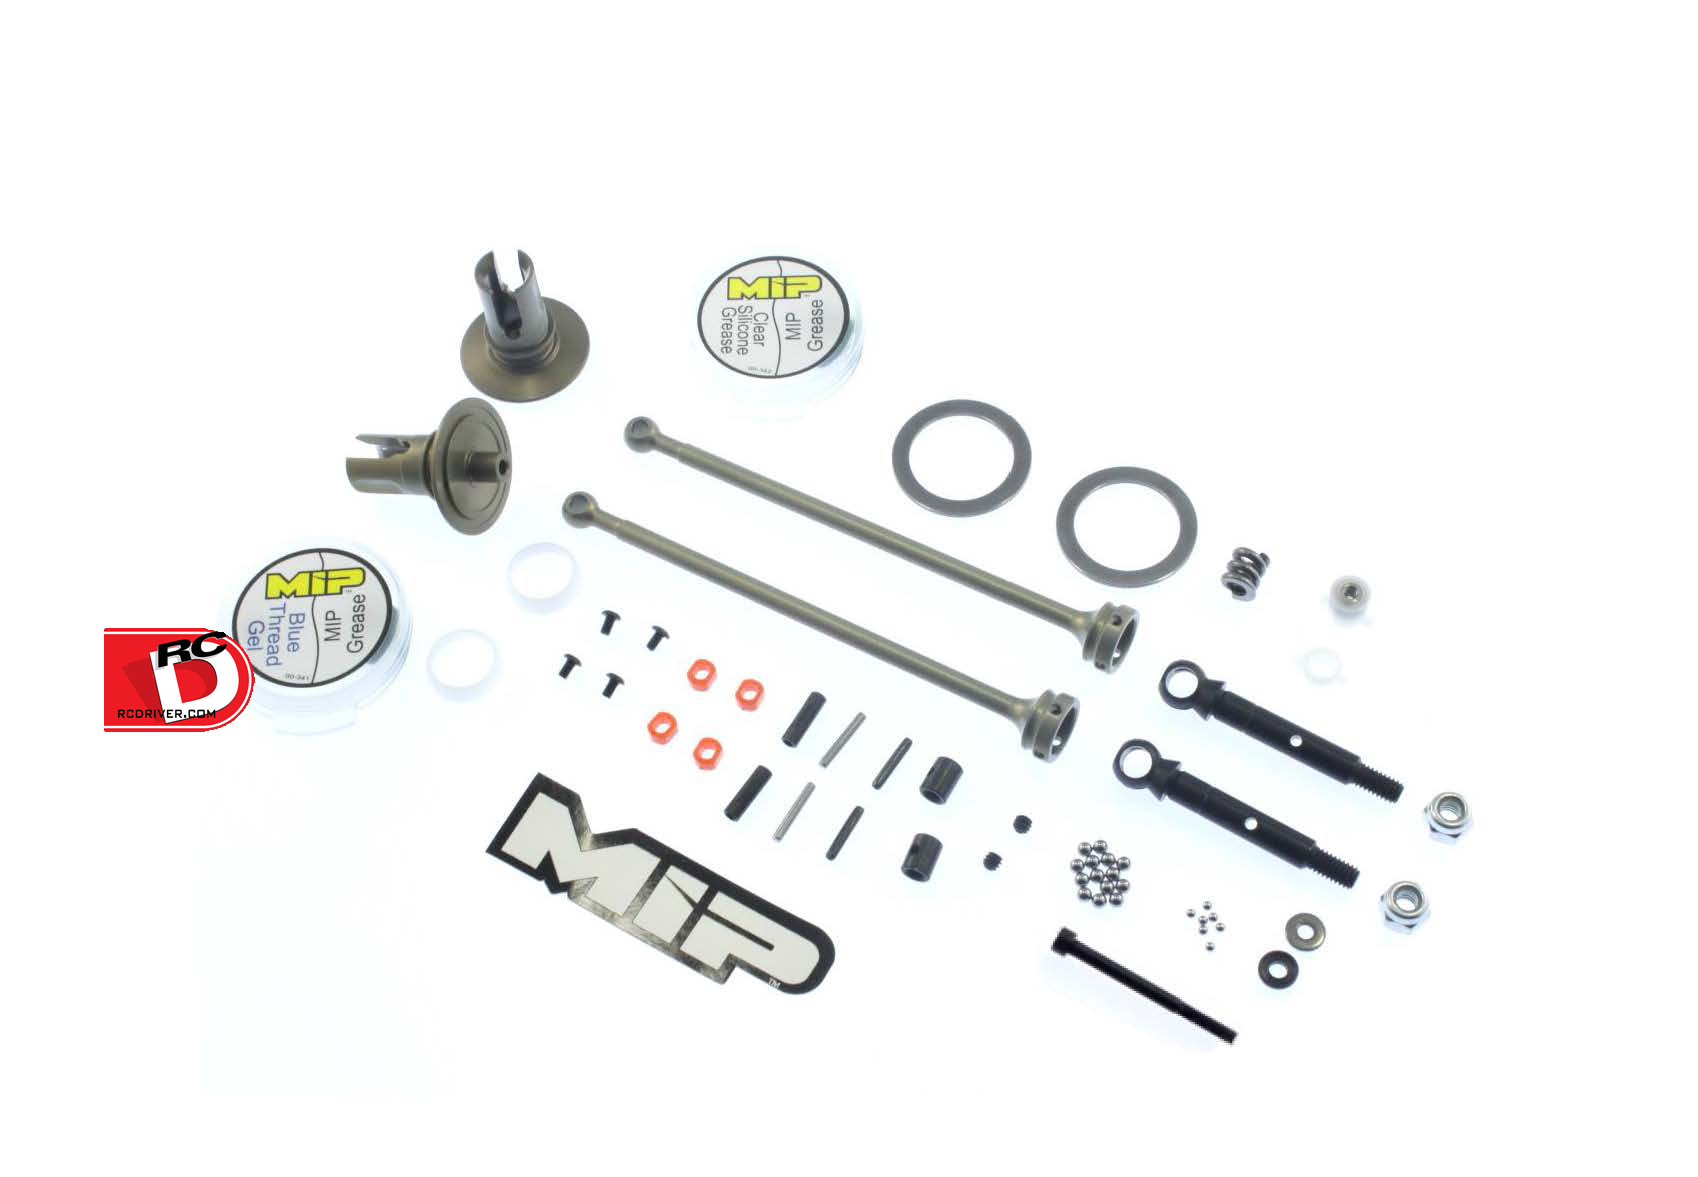 MIP - Pucks 17.5 Drive System for the TLR 22 SCT 2